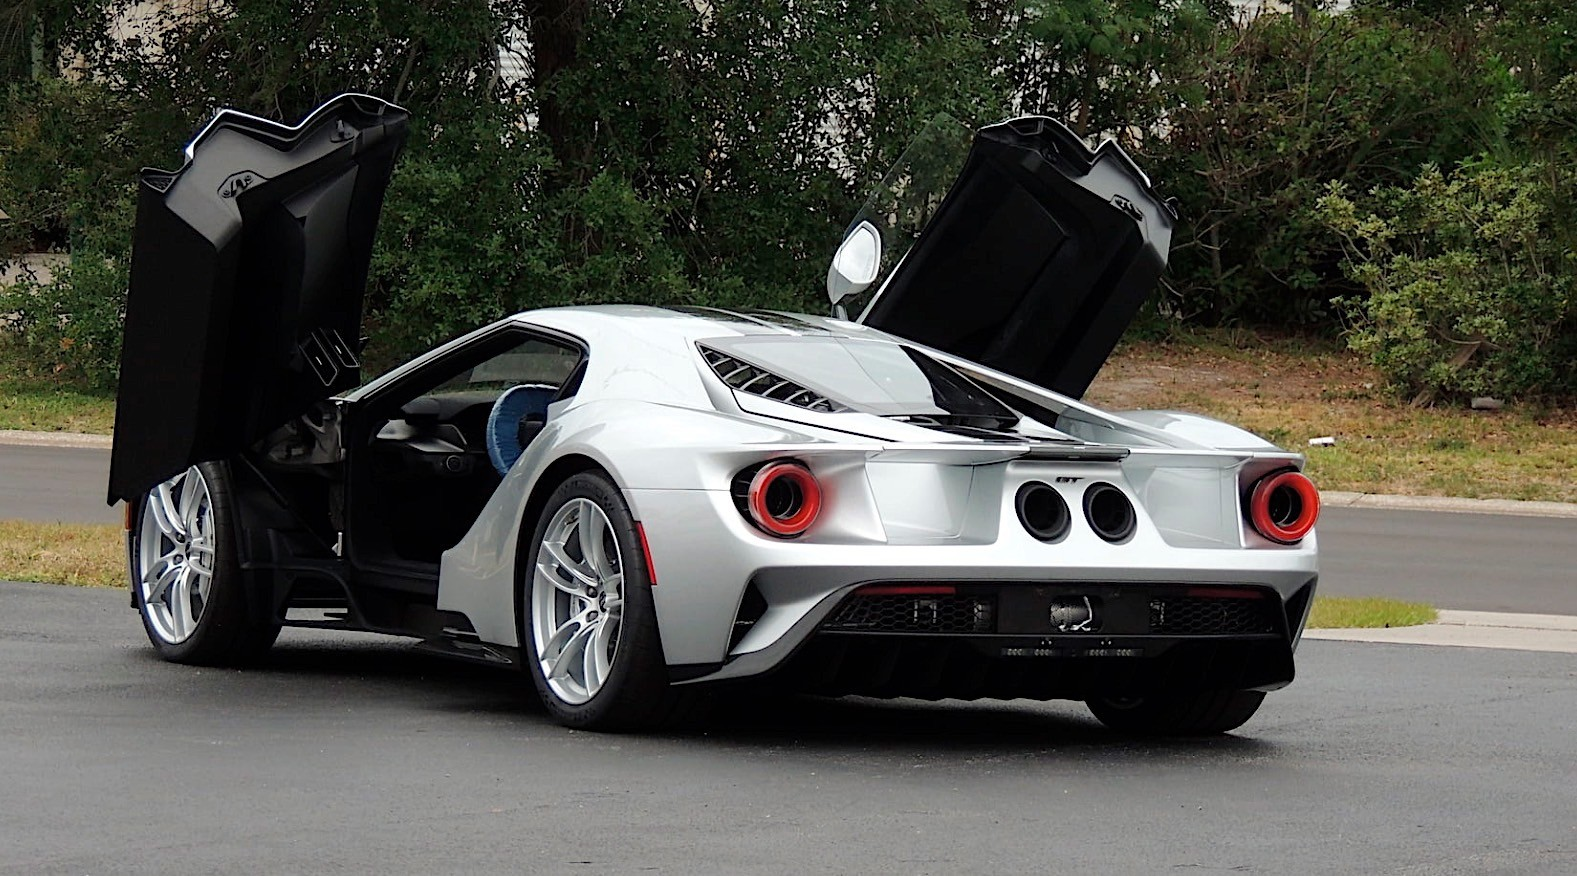 Hear The Ford Gt S 600 Hp Twin Turbo V6 Engine Roar Into